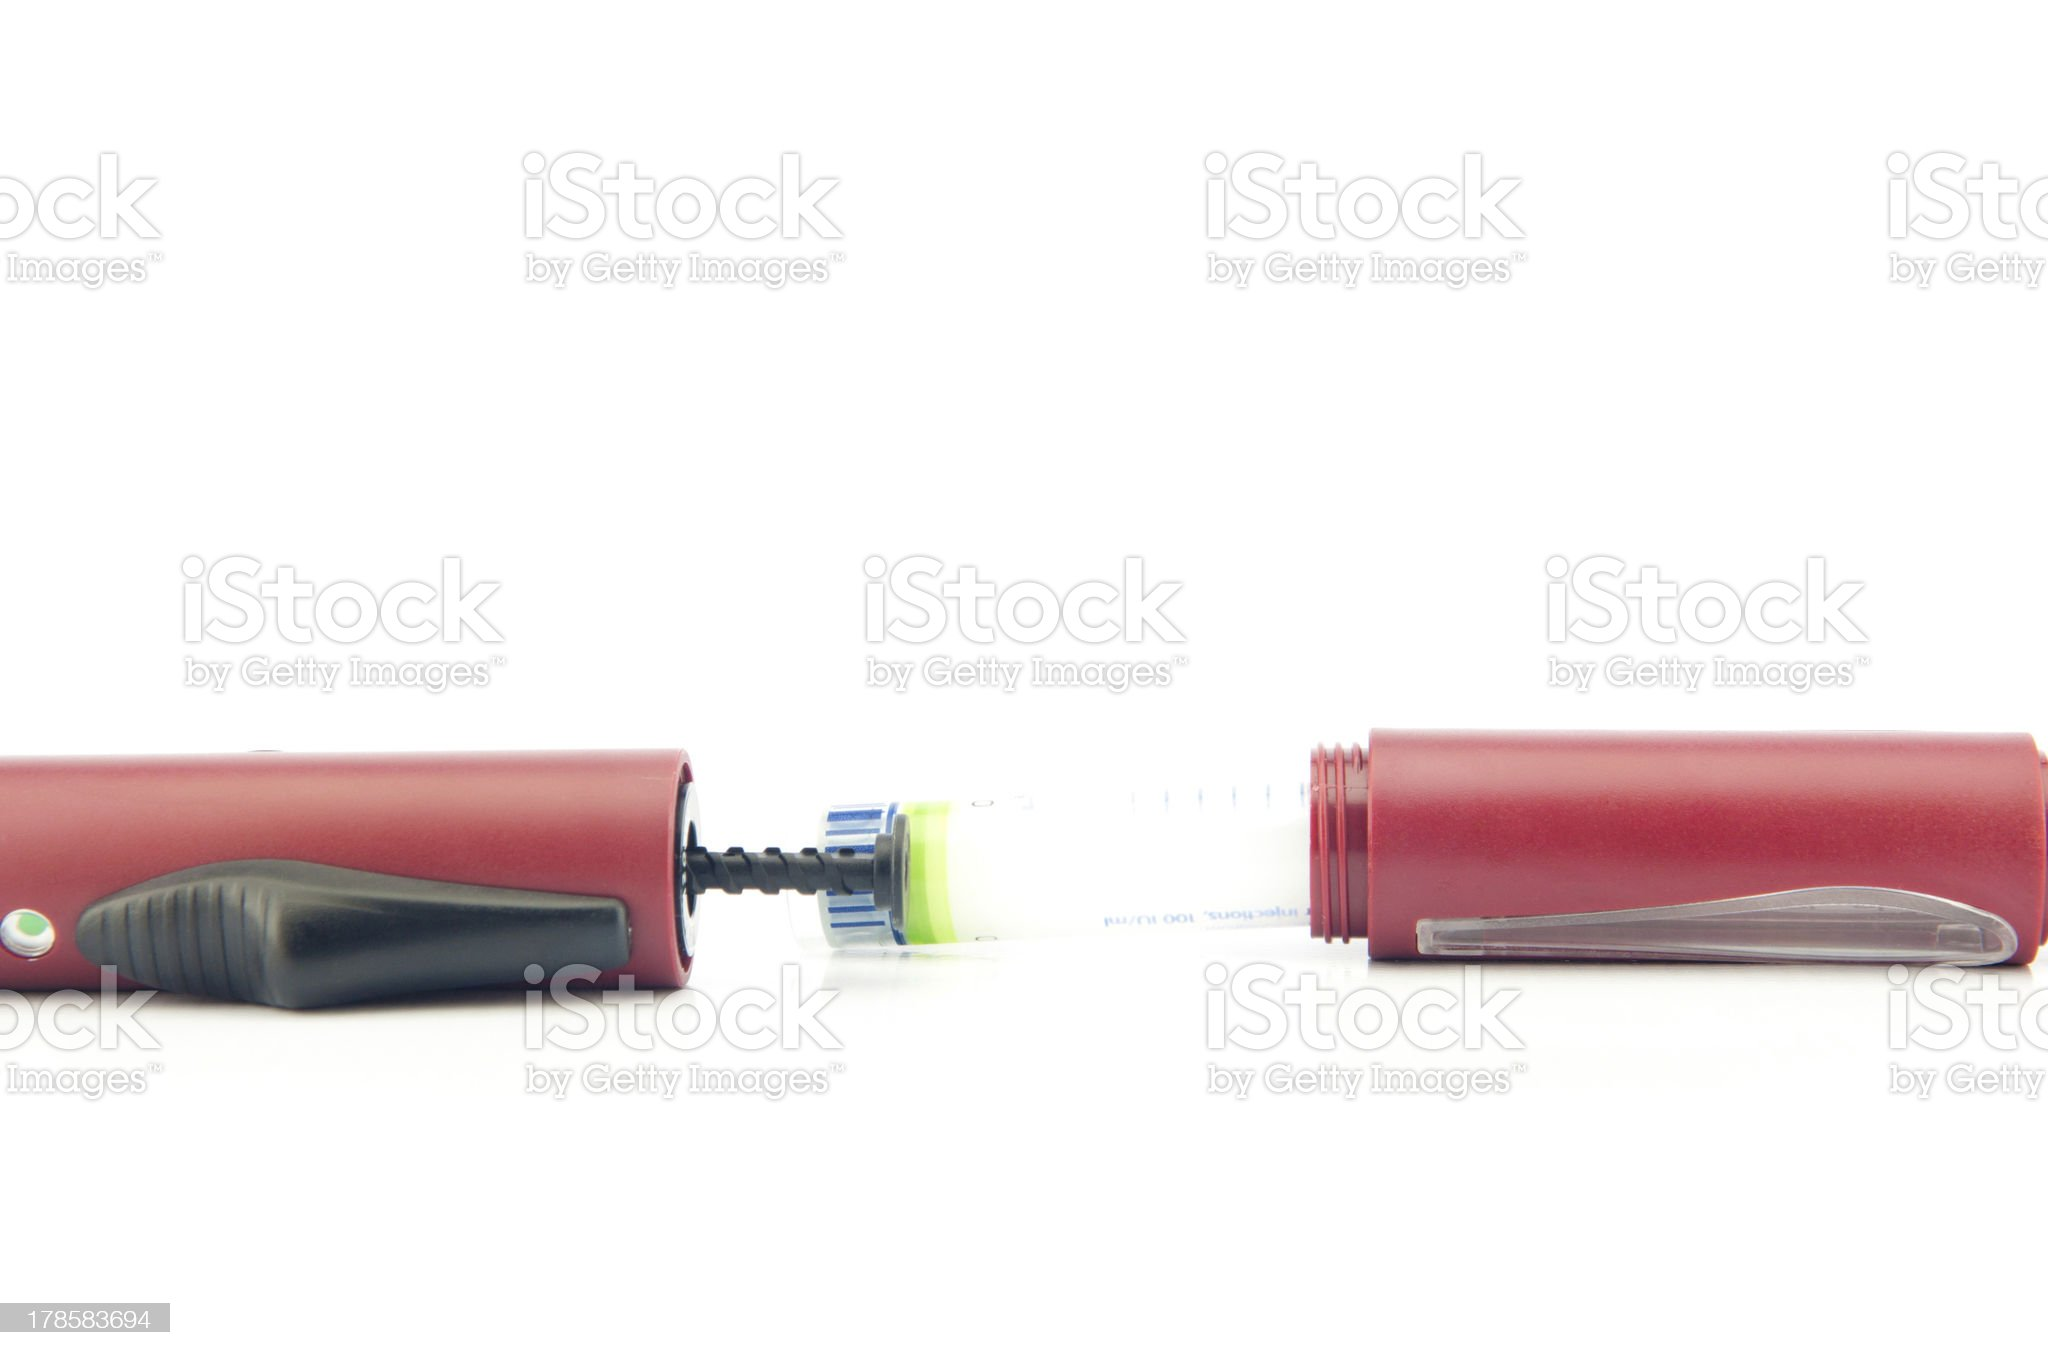 Action insulin tube insert to pen show content of equipmet royalty-free stock photo